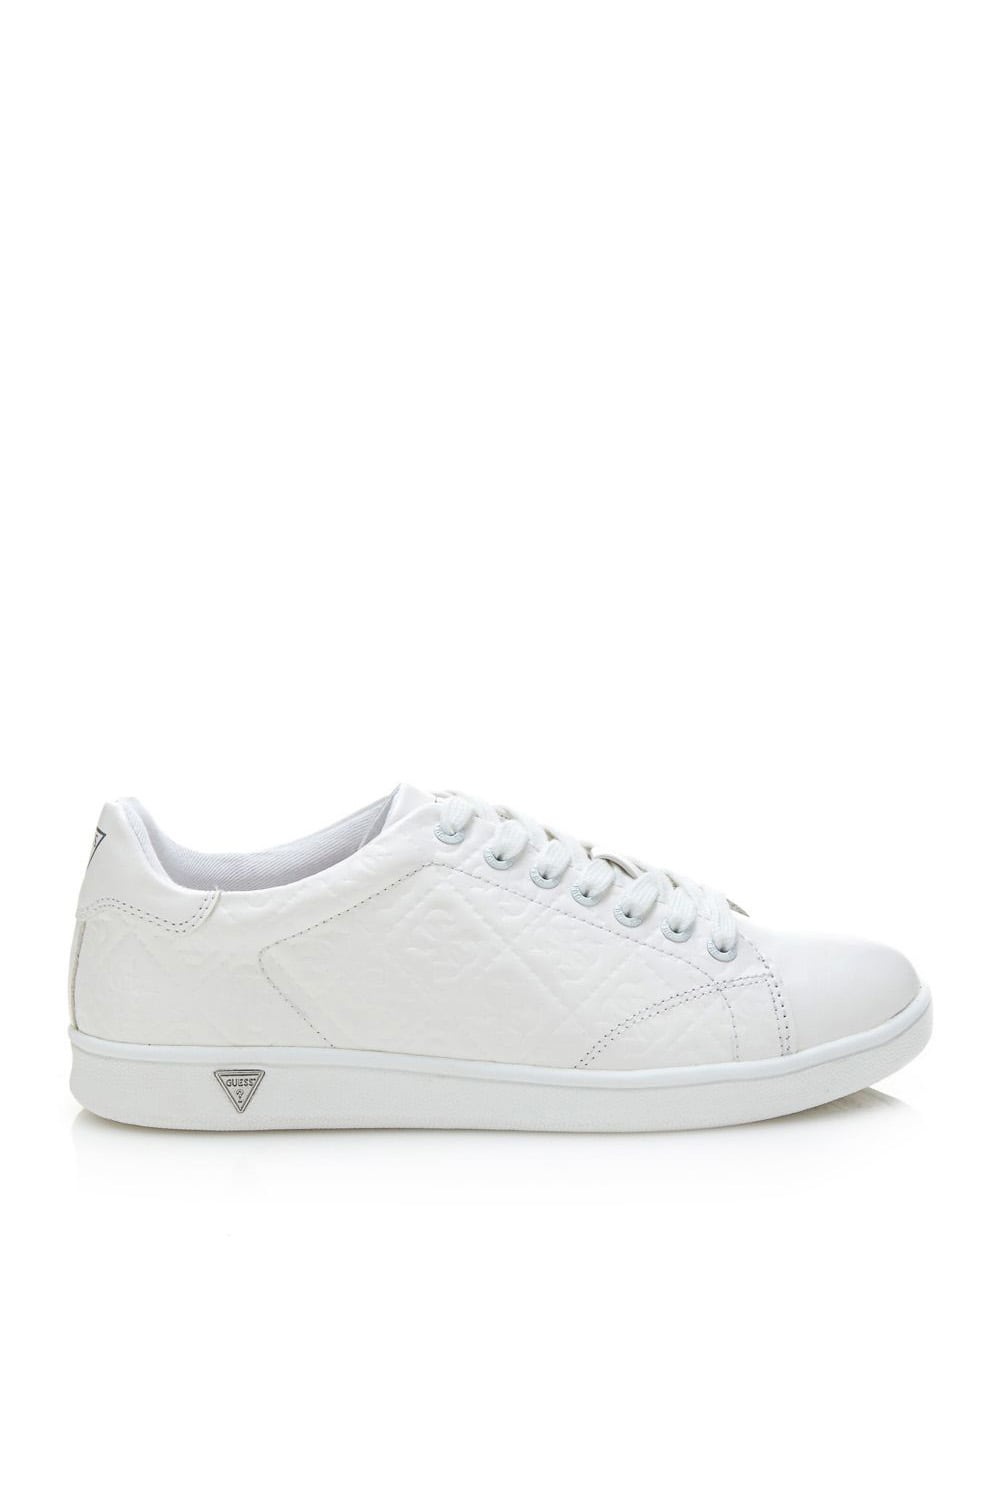 a23e273dc11 SQUARE | Sneakers Guess 008667